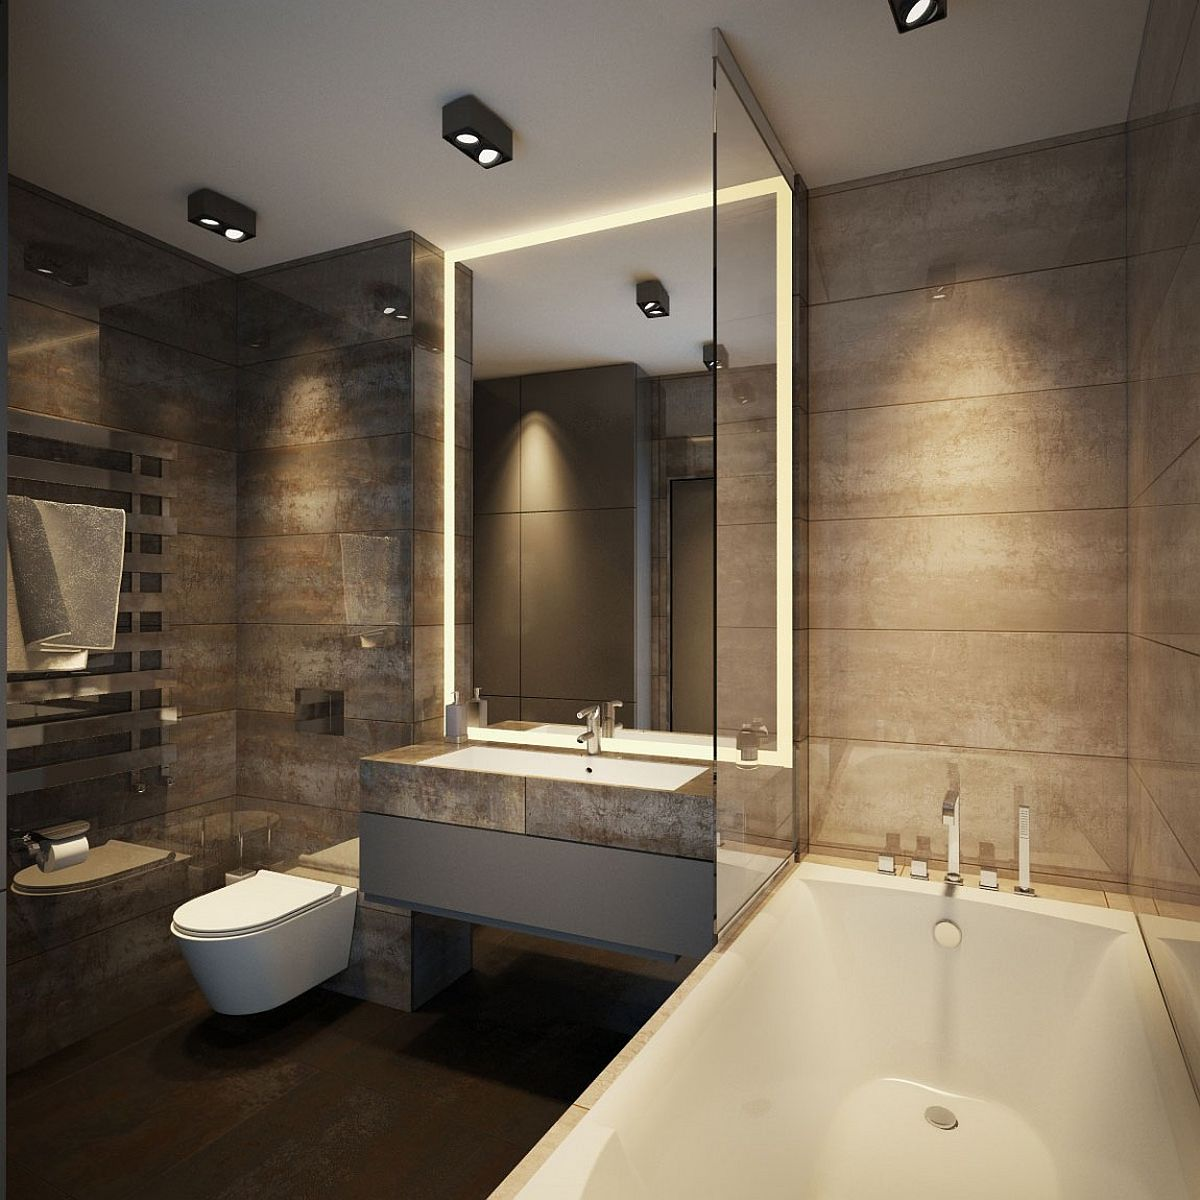 Apartment ernst in kiev inspired by posh hotel ambiance for Bathroom interior ideas